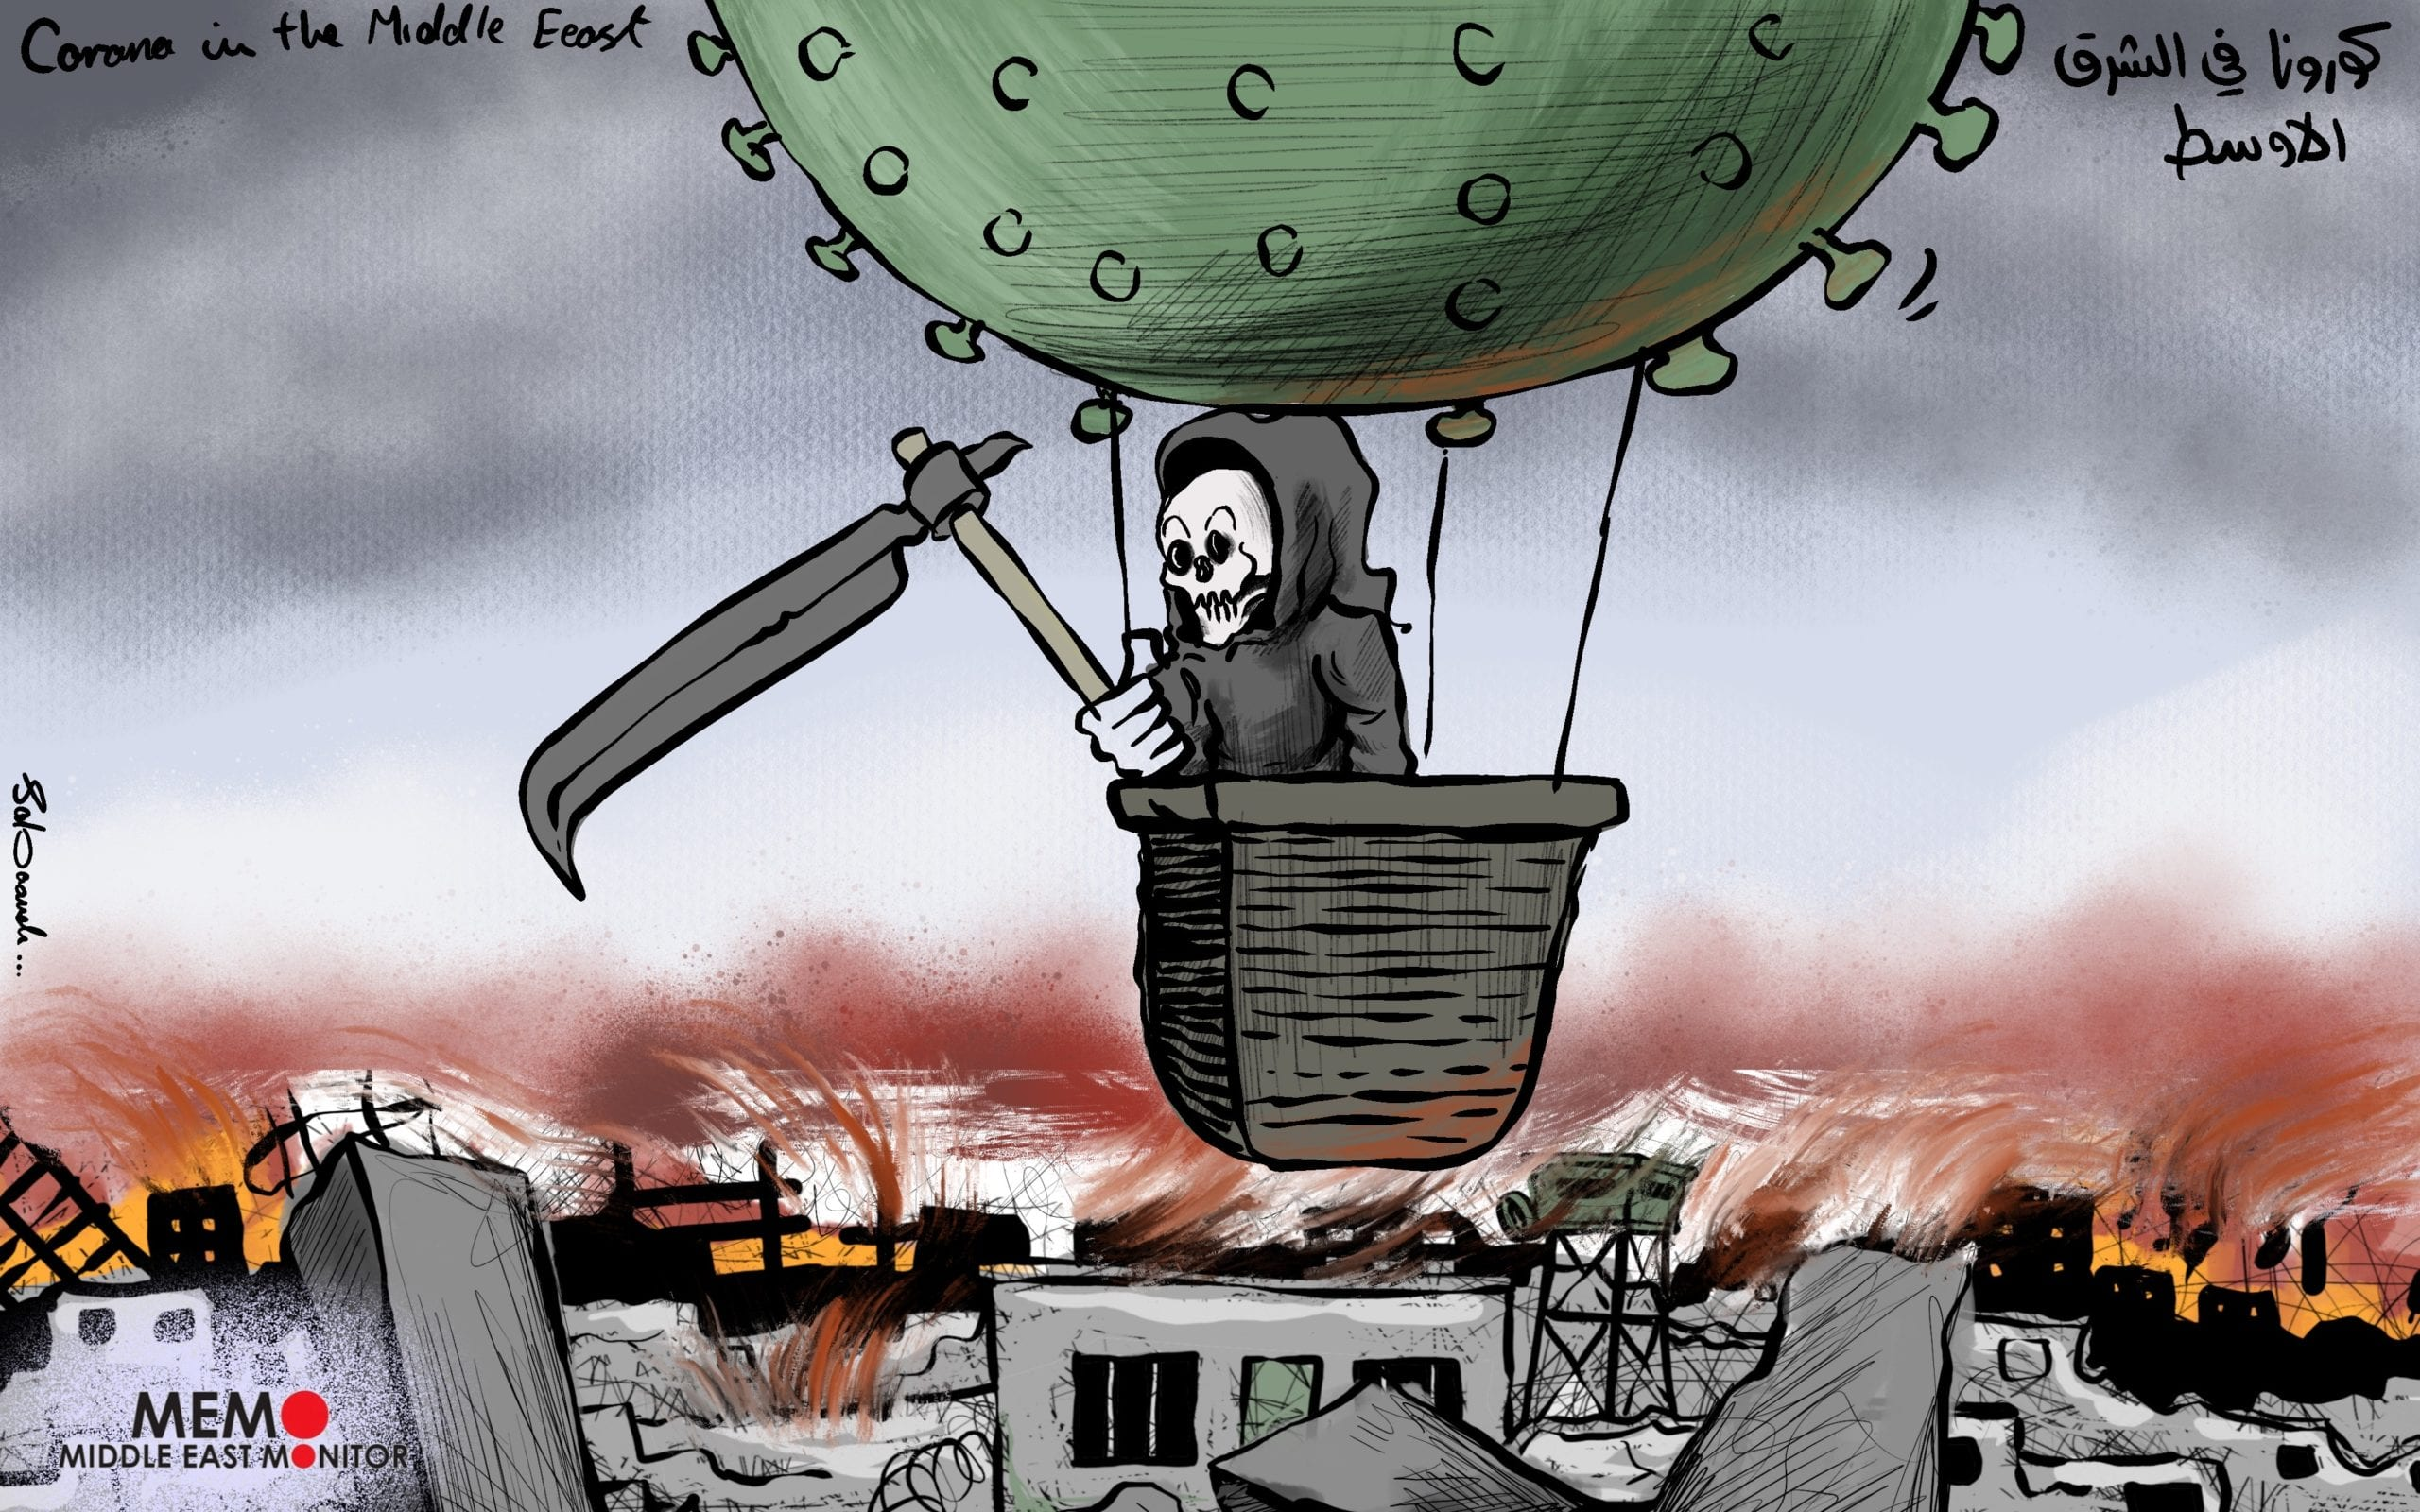 Coronavirus spreading in the Middle East - Cartoon [Sabaaneh/MiddleEastMonitor]